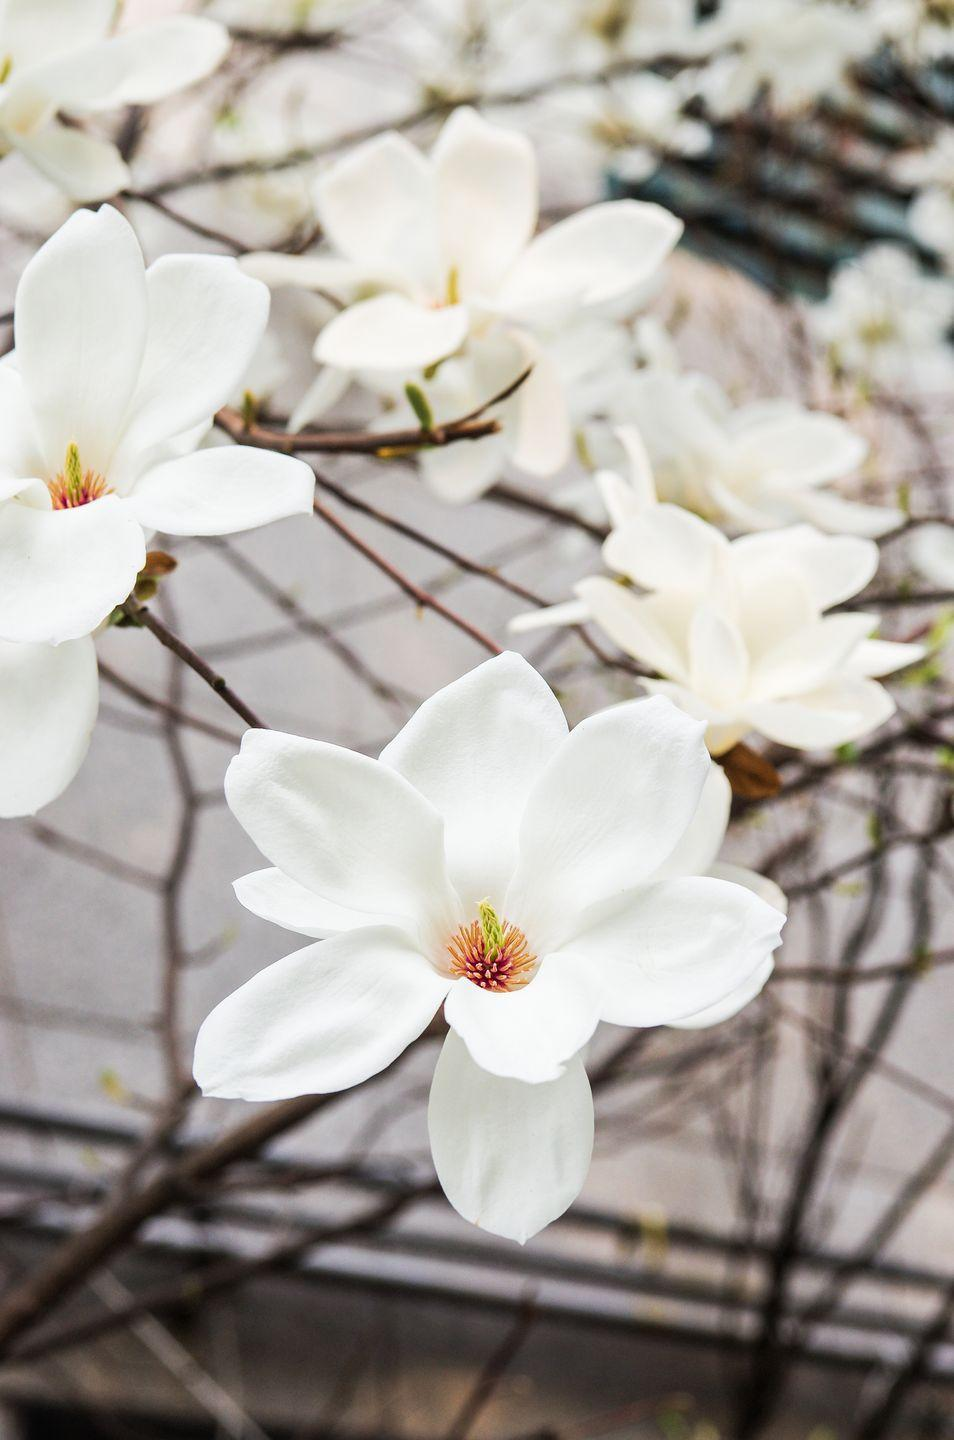 <p>These stunning blooms often festoon the trees as spring arrives, getting everyone who sees them excited for the season to come. That's why it's only logical that they signify a love of nature. </p>